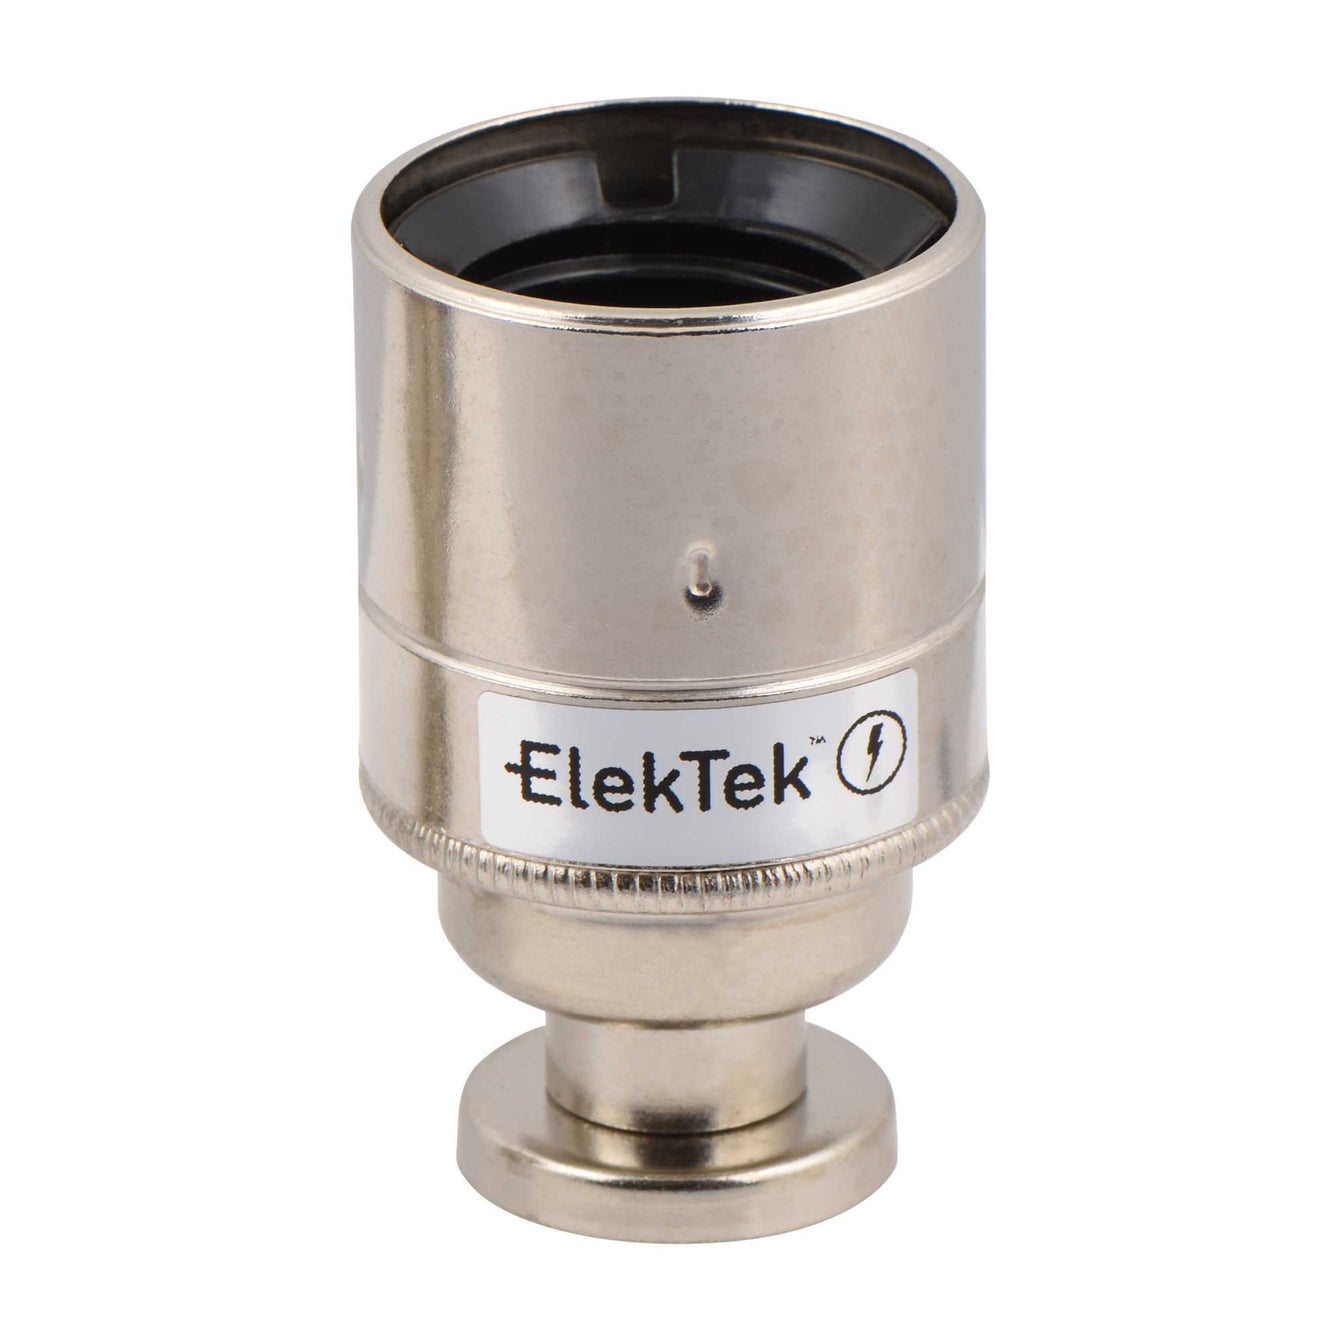 ElekTek ES Edison Screw E27 Lamp Holder Plain Skirt With Back Plate Cover and Screws Brass